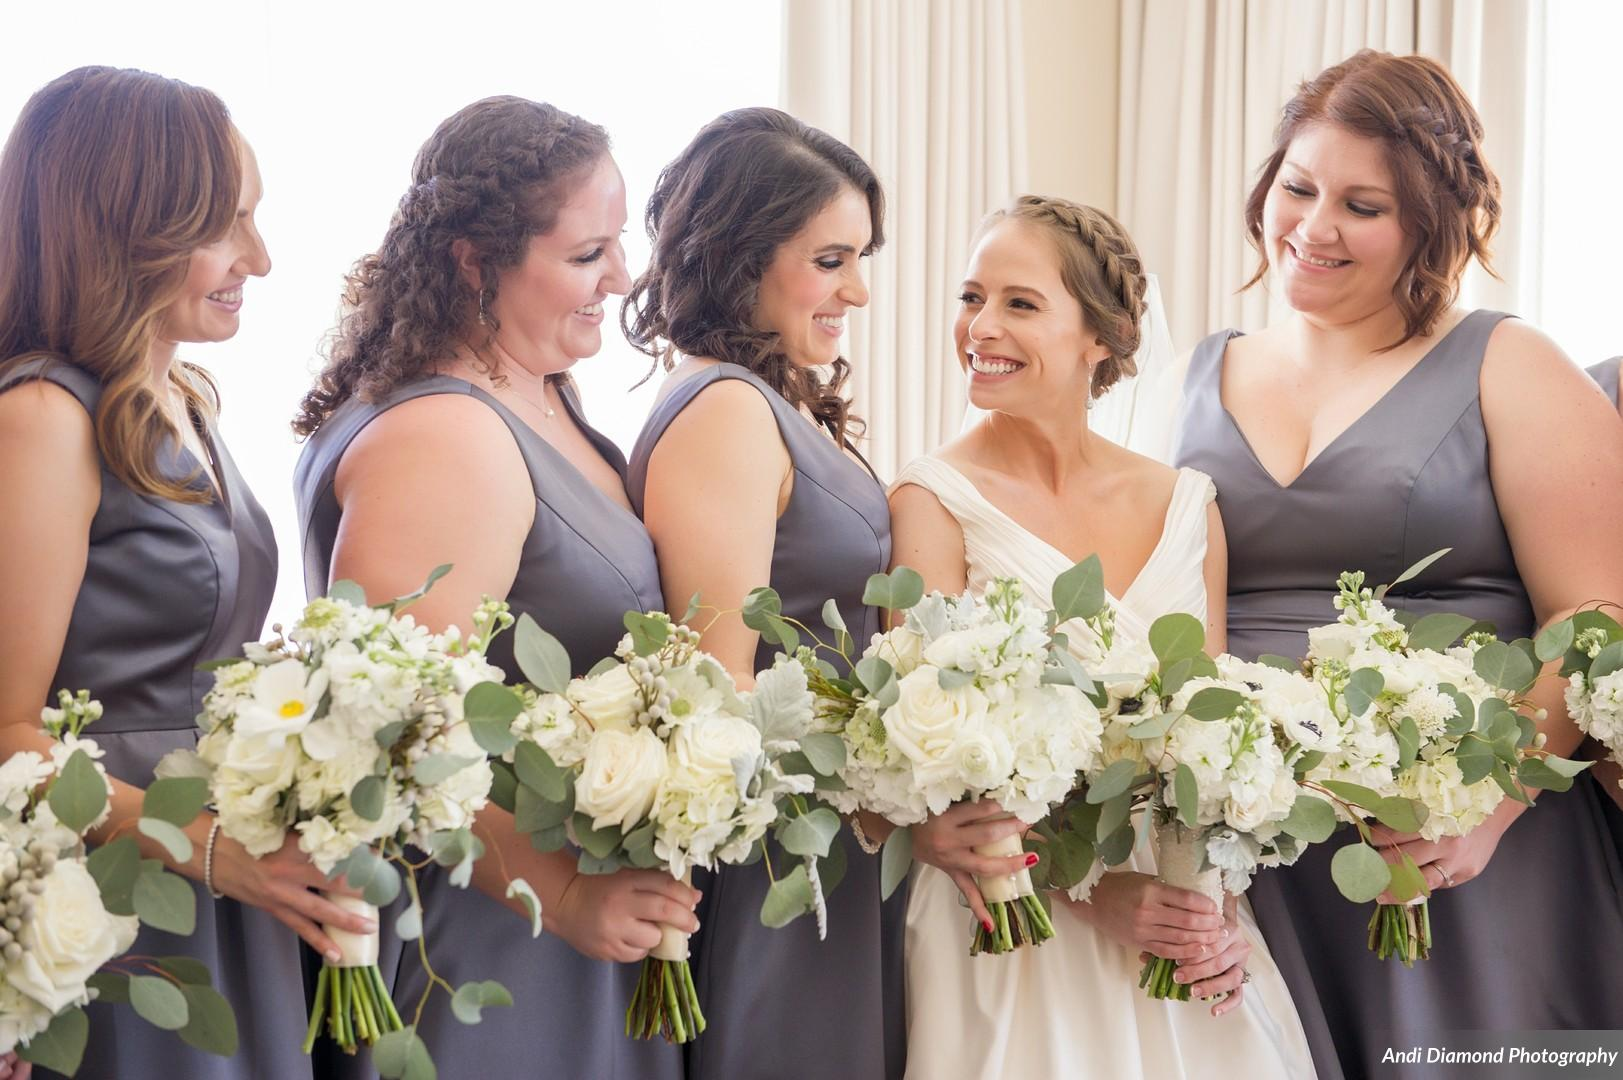 To keep things simple and sophisticated the bride chose matching bouquets of ivory florals with greenery to subtly pop against the bridesmaids' charcoal dresses.